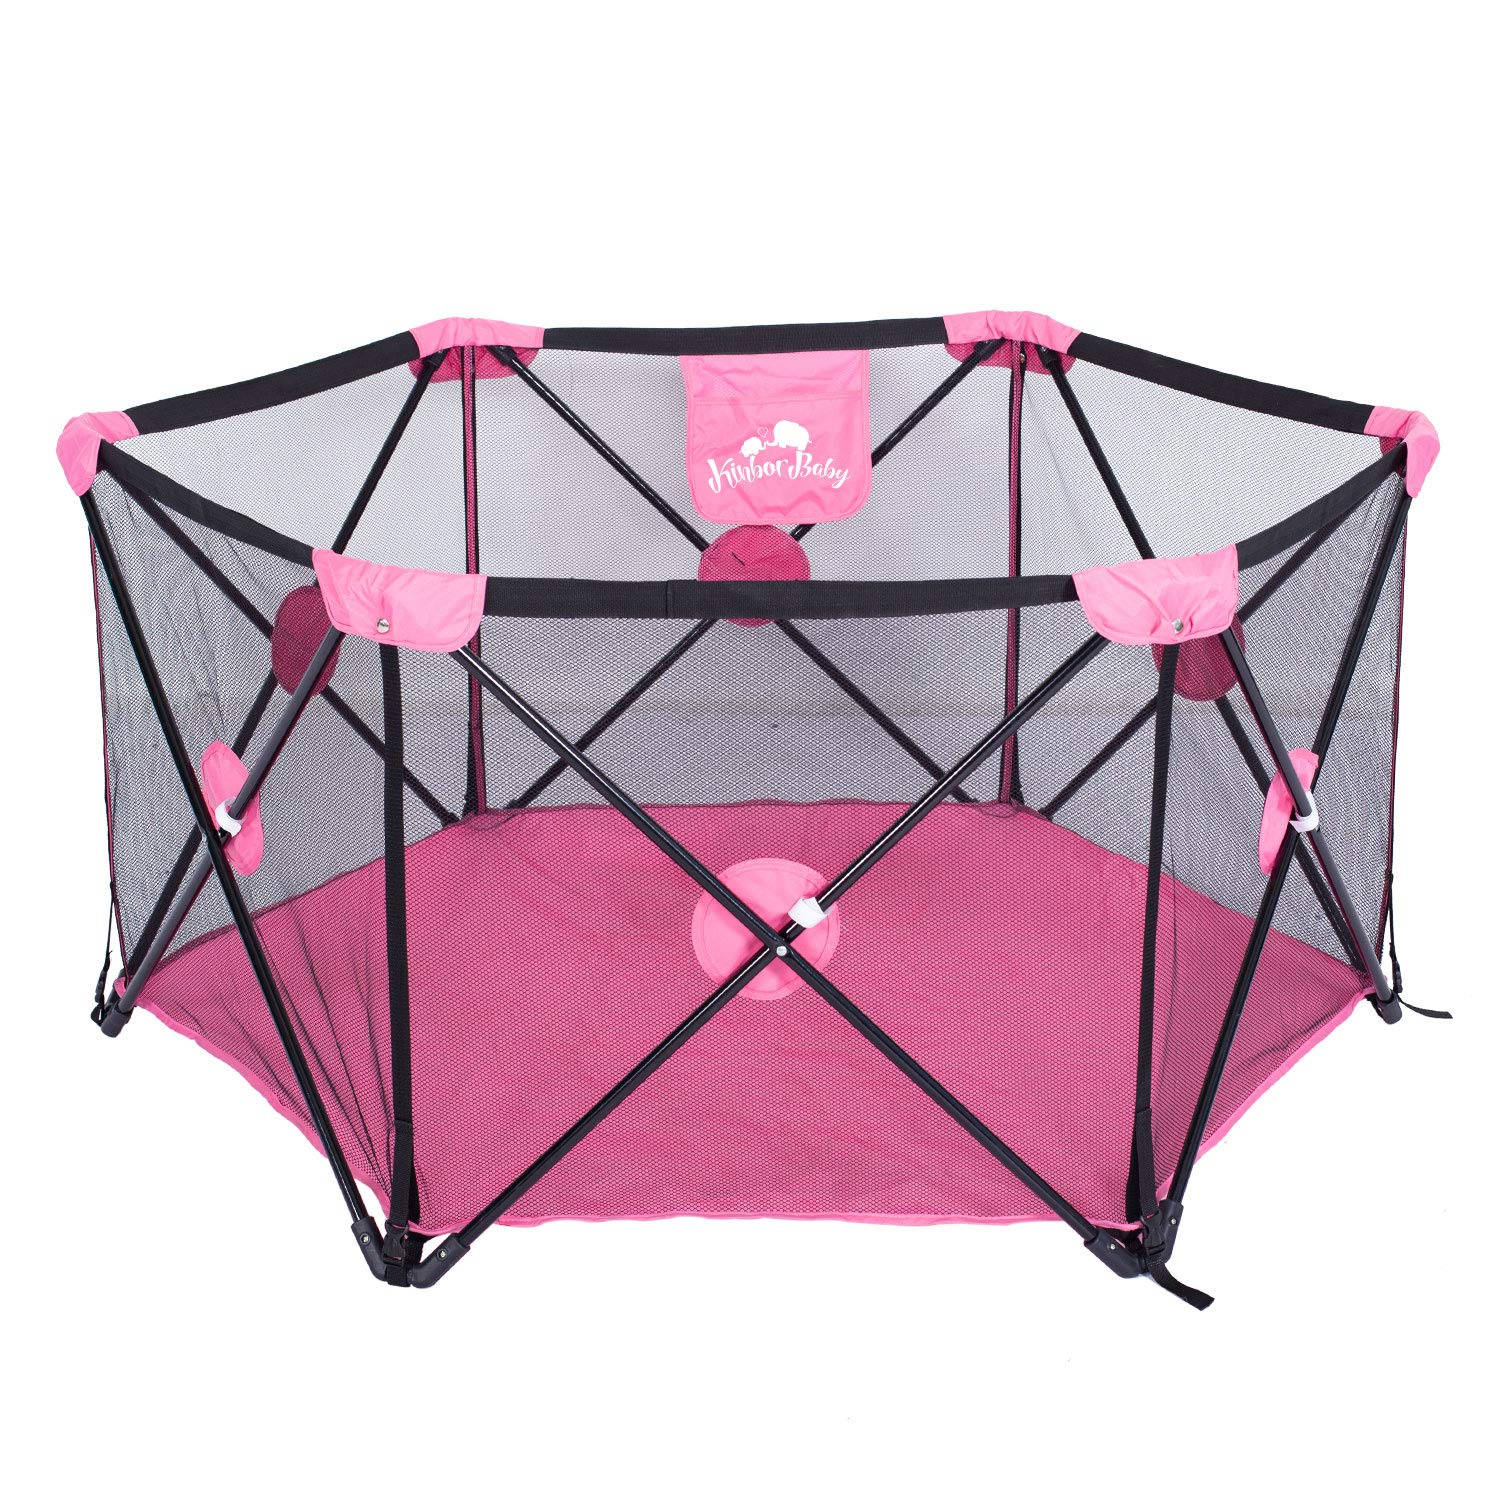 Travel Crib For Baby. Easy Front And Top Access. Protect Your Baby With Sun Shade And Bug Screen. Your All-In-One Home Playard and Portable Crib. Easy Tool-Free Set Up and Take Down. Mom s Choice.